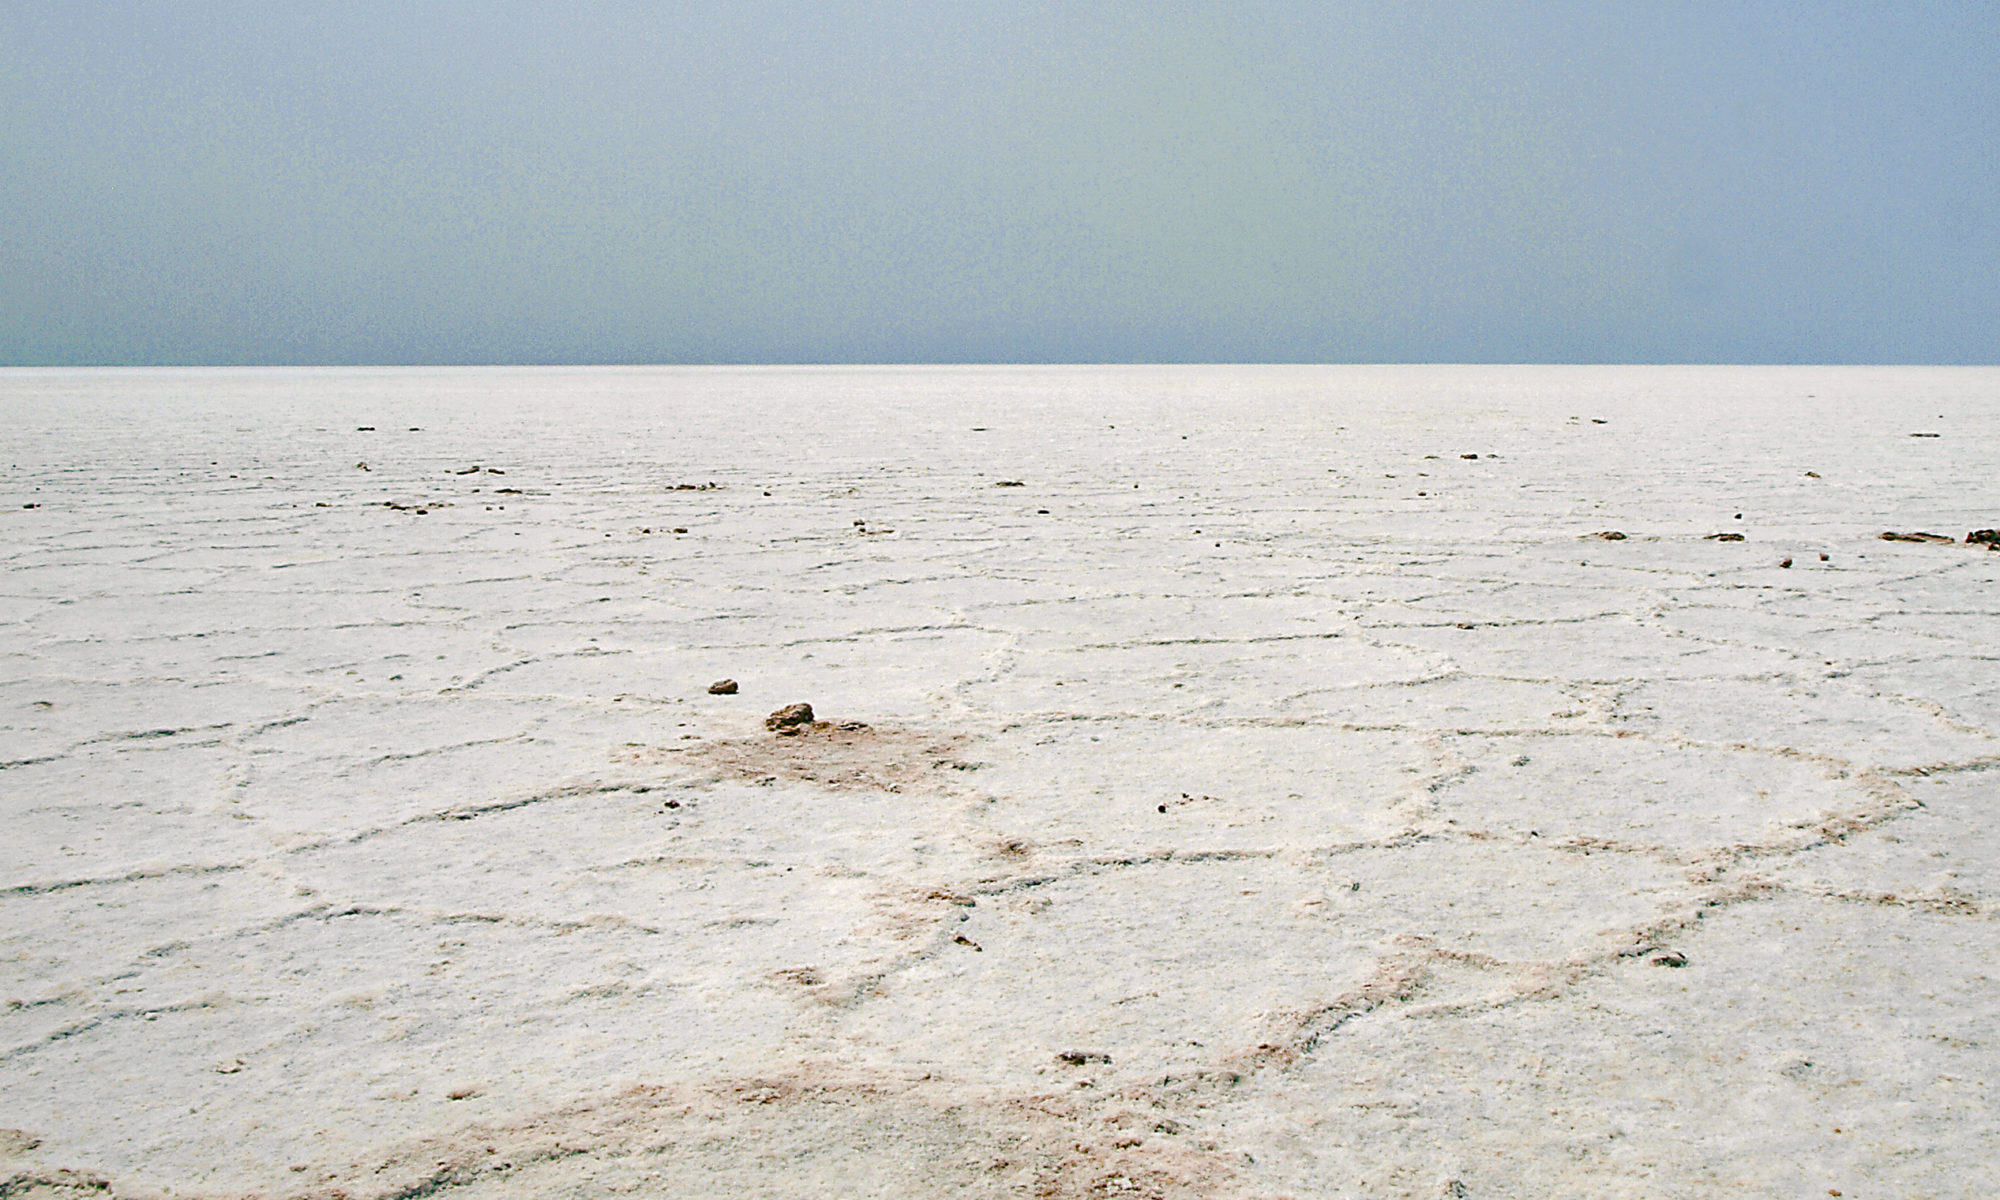 Badwater basin el mar de sal / The pool of salt